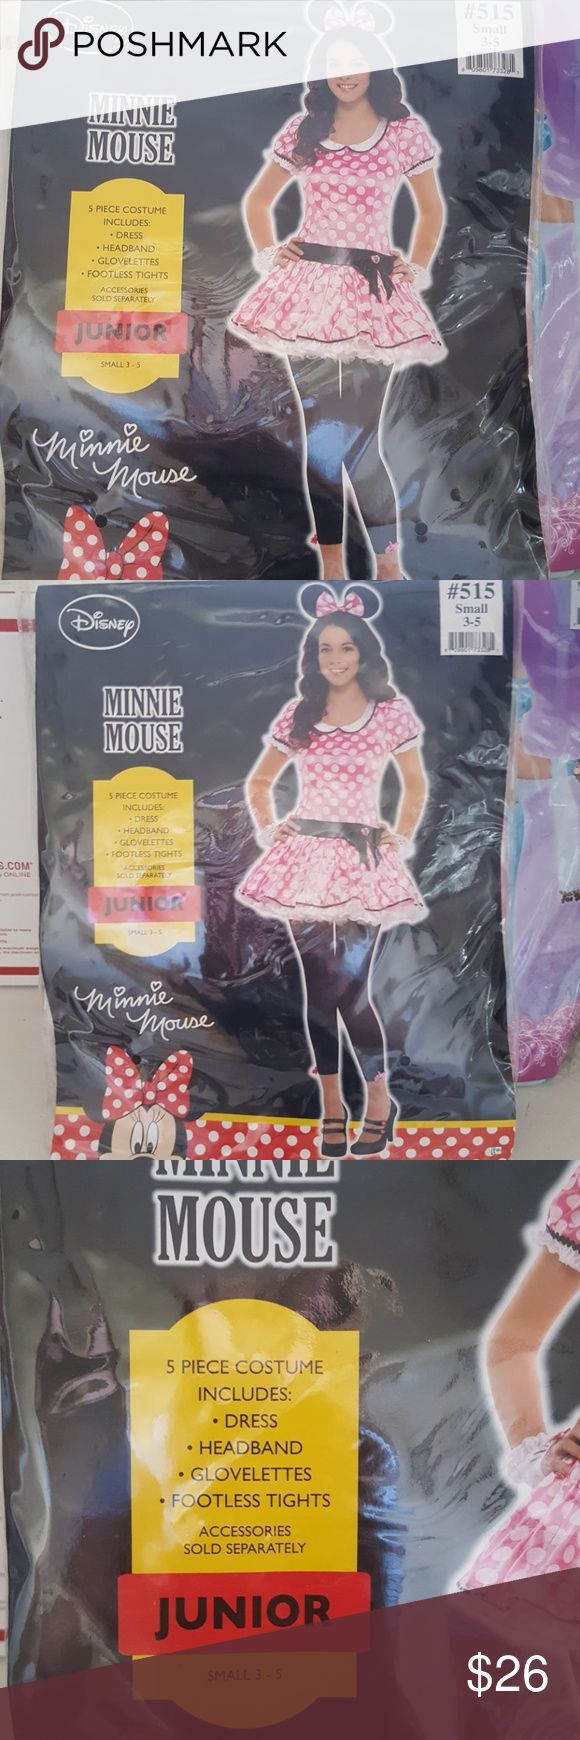 Minnie mouse costume junior or petite NWOT Disney Minnie mouse costume. Junior or petite.  Size small 3 to 5. Brand new. Sealed accessories . Never worn. Includes dress, headband, glovelettes,  and rootless tights. Perfect for Halloween or costume party Other